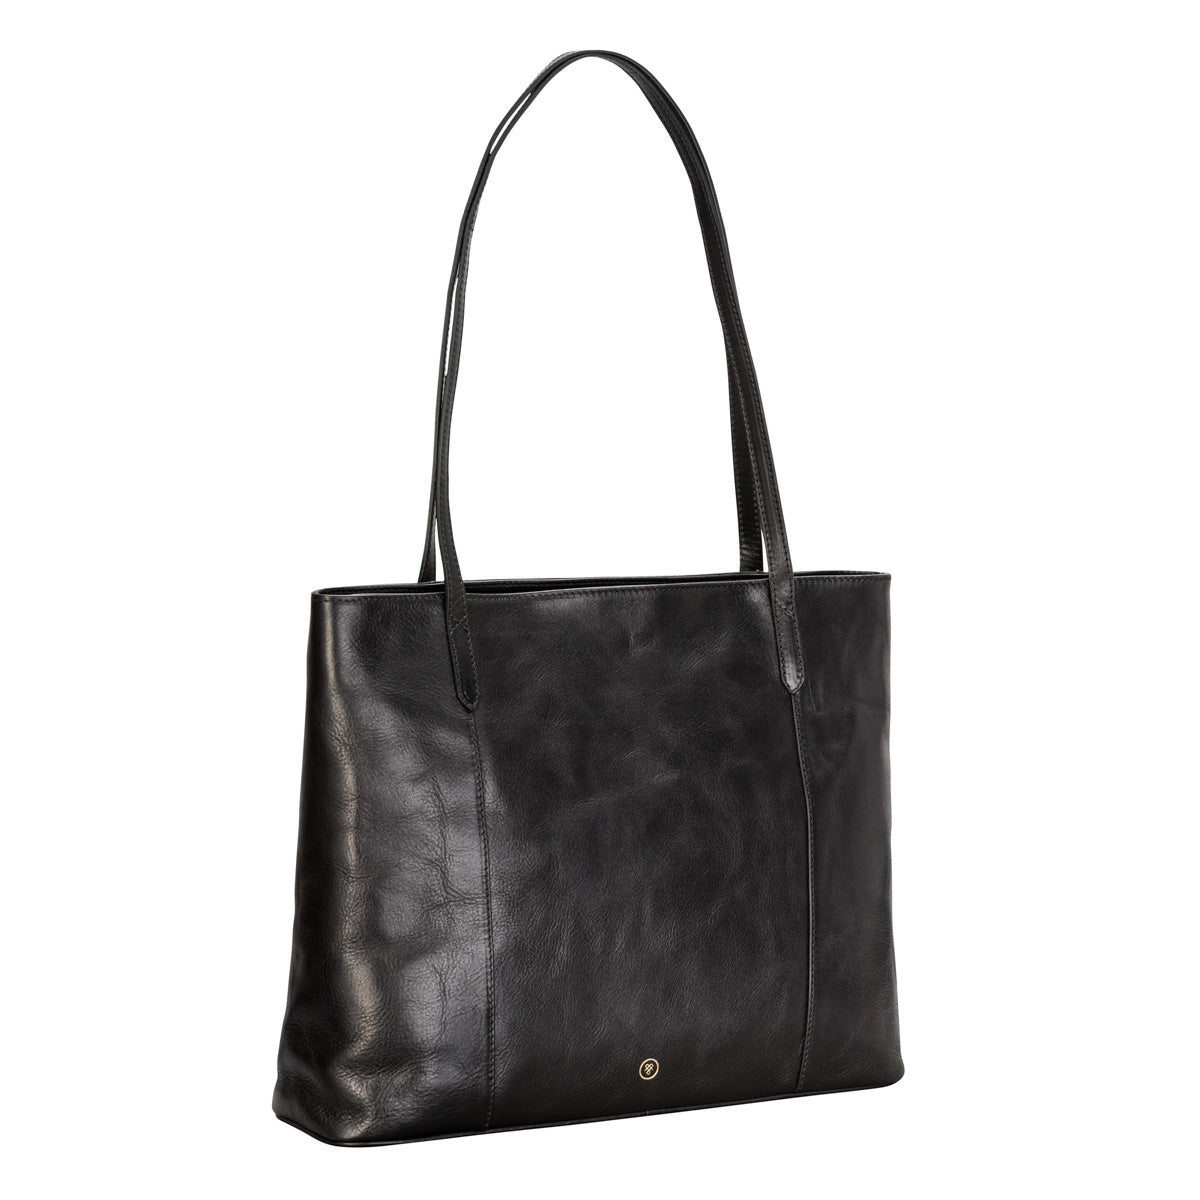 Image 2 of the 'Athenea' Black Veg-Tanned Leather Shopper